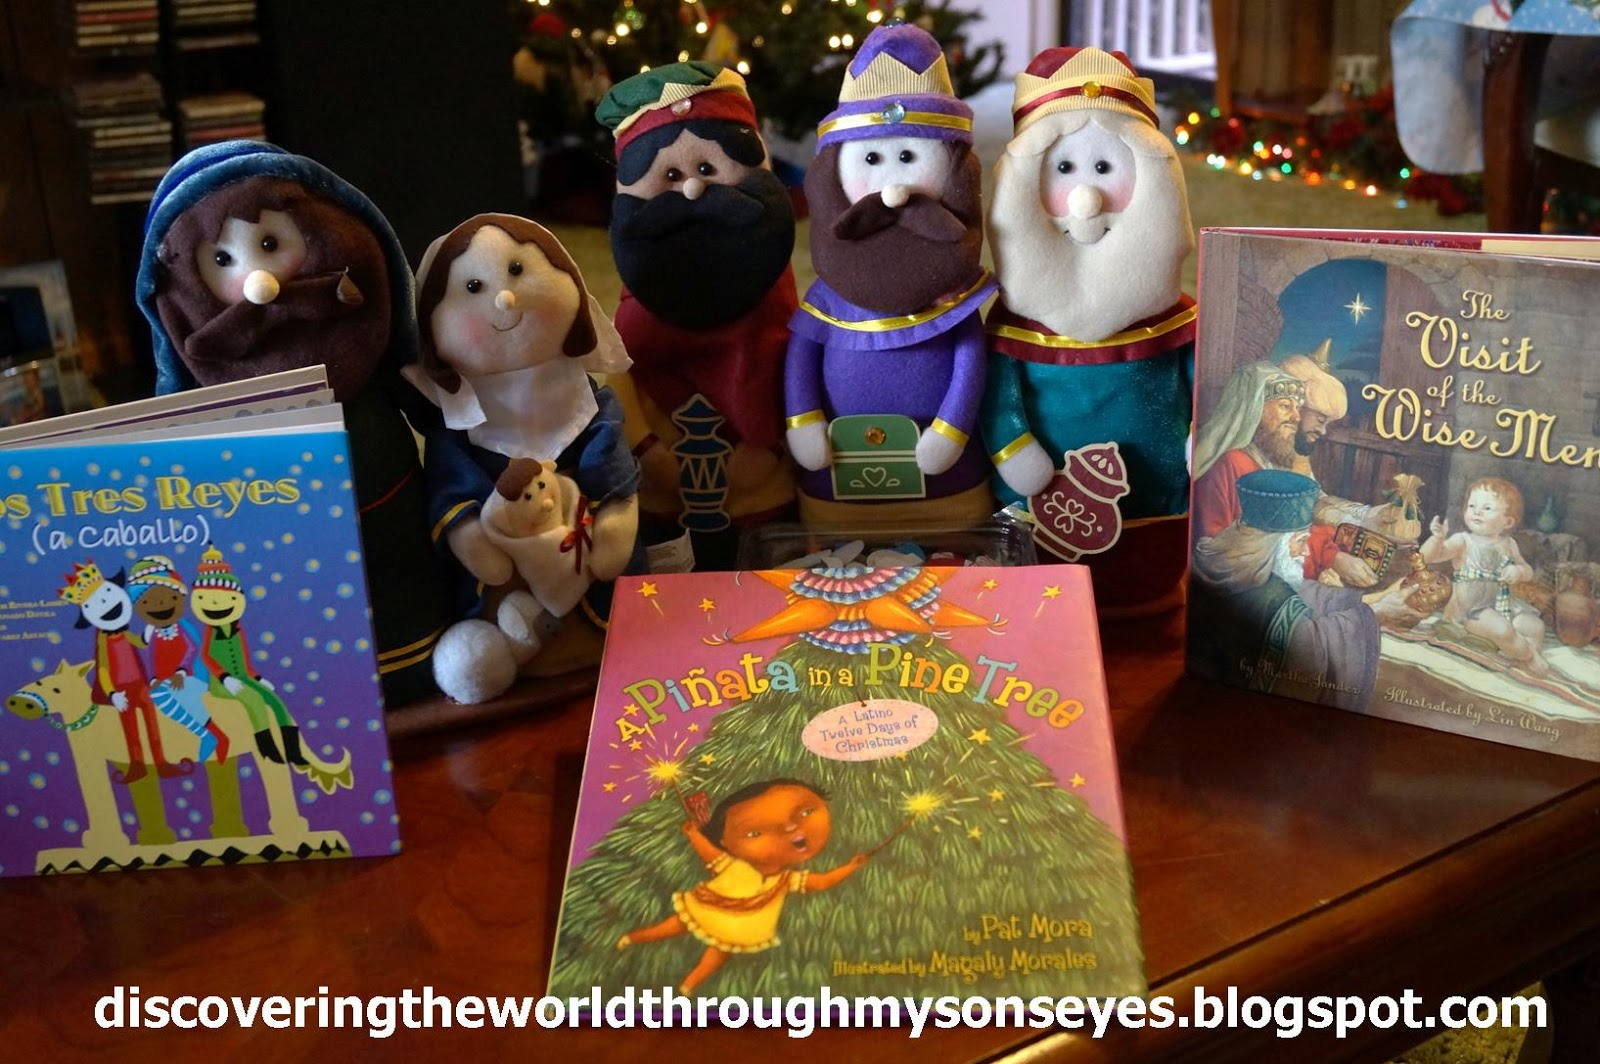 Story Time Books Los Tres Reyes A Pinata In Pine Tree And The Visit Of Three Wise Men